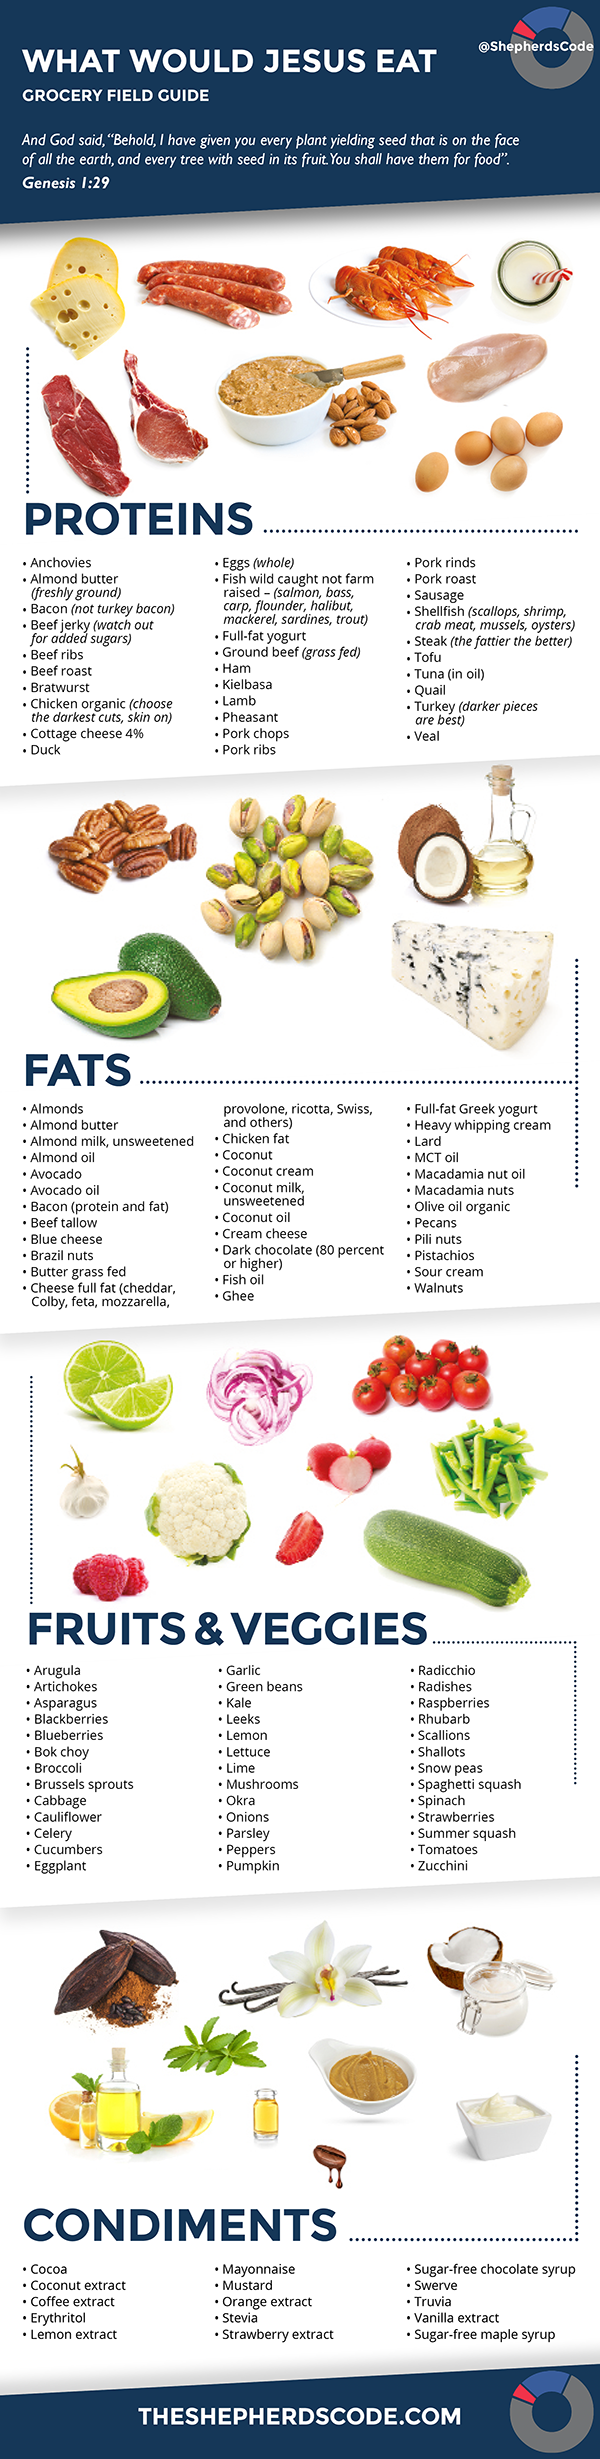 Pin By Marjorie Jacobs On The Shepherds Code Shepherds Diet Diet And Nutrition Bible Diet